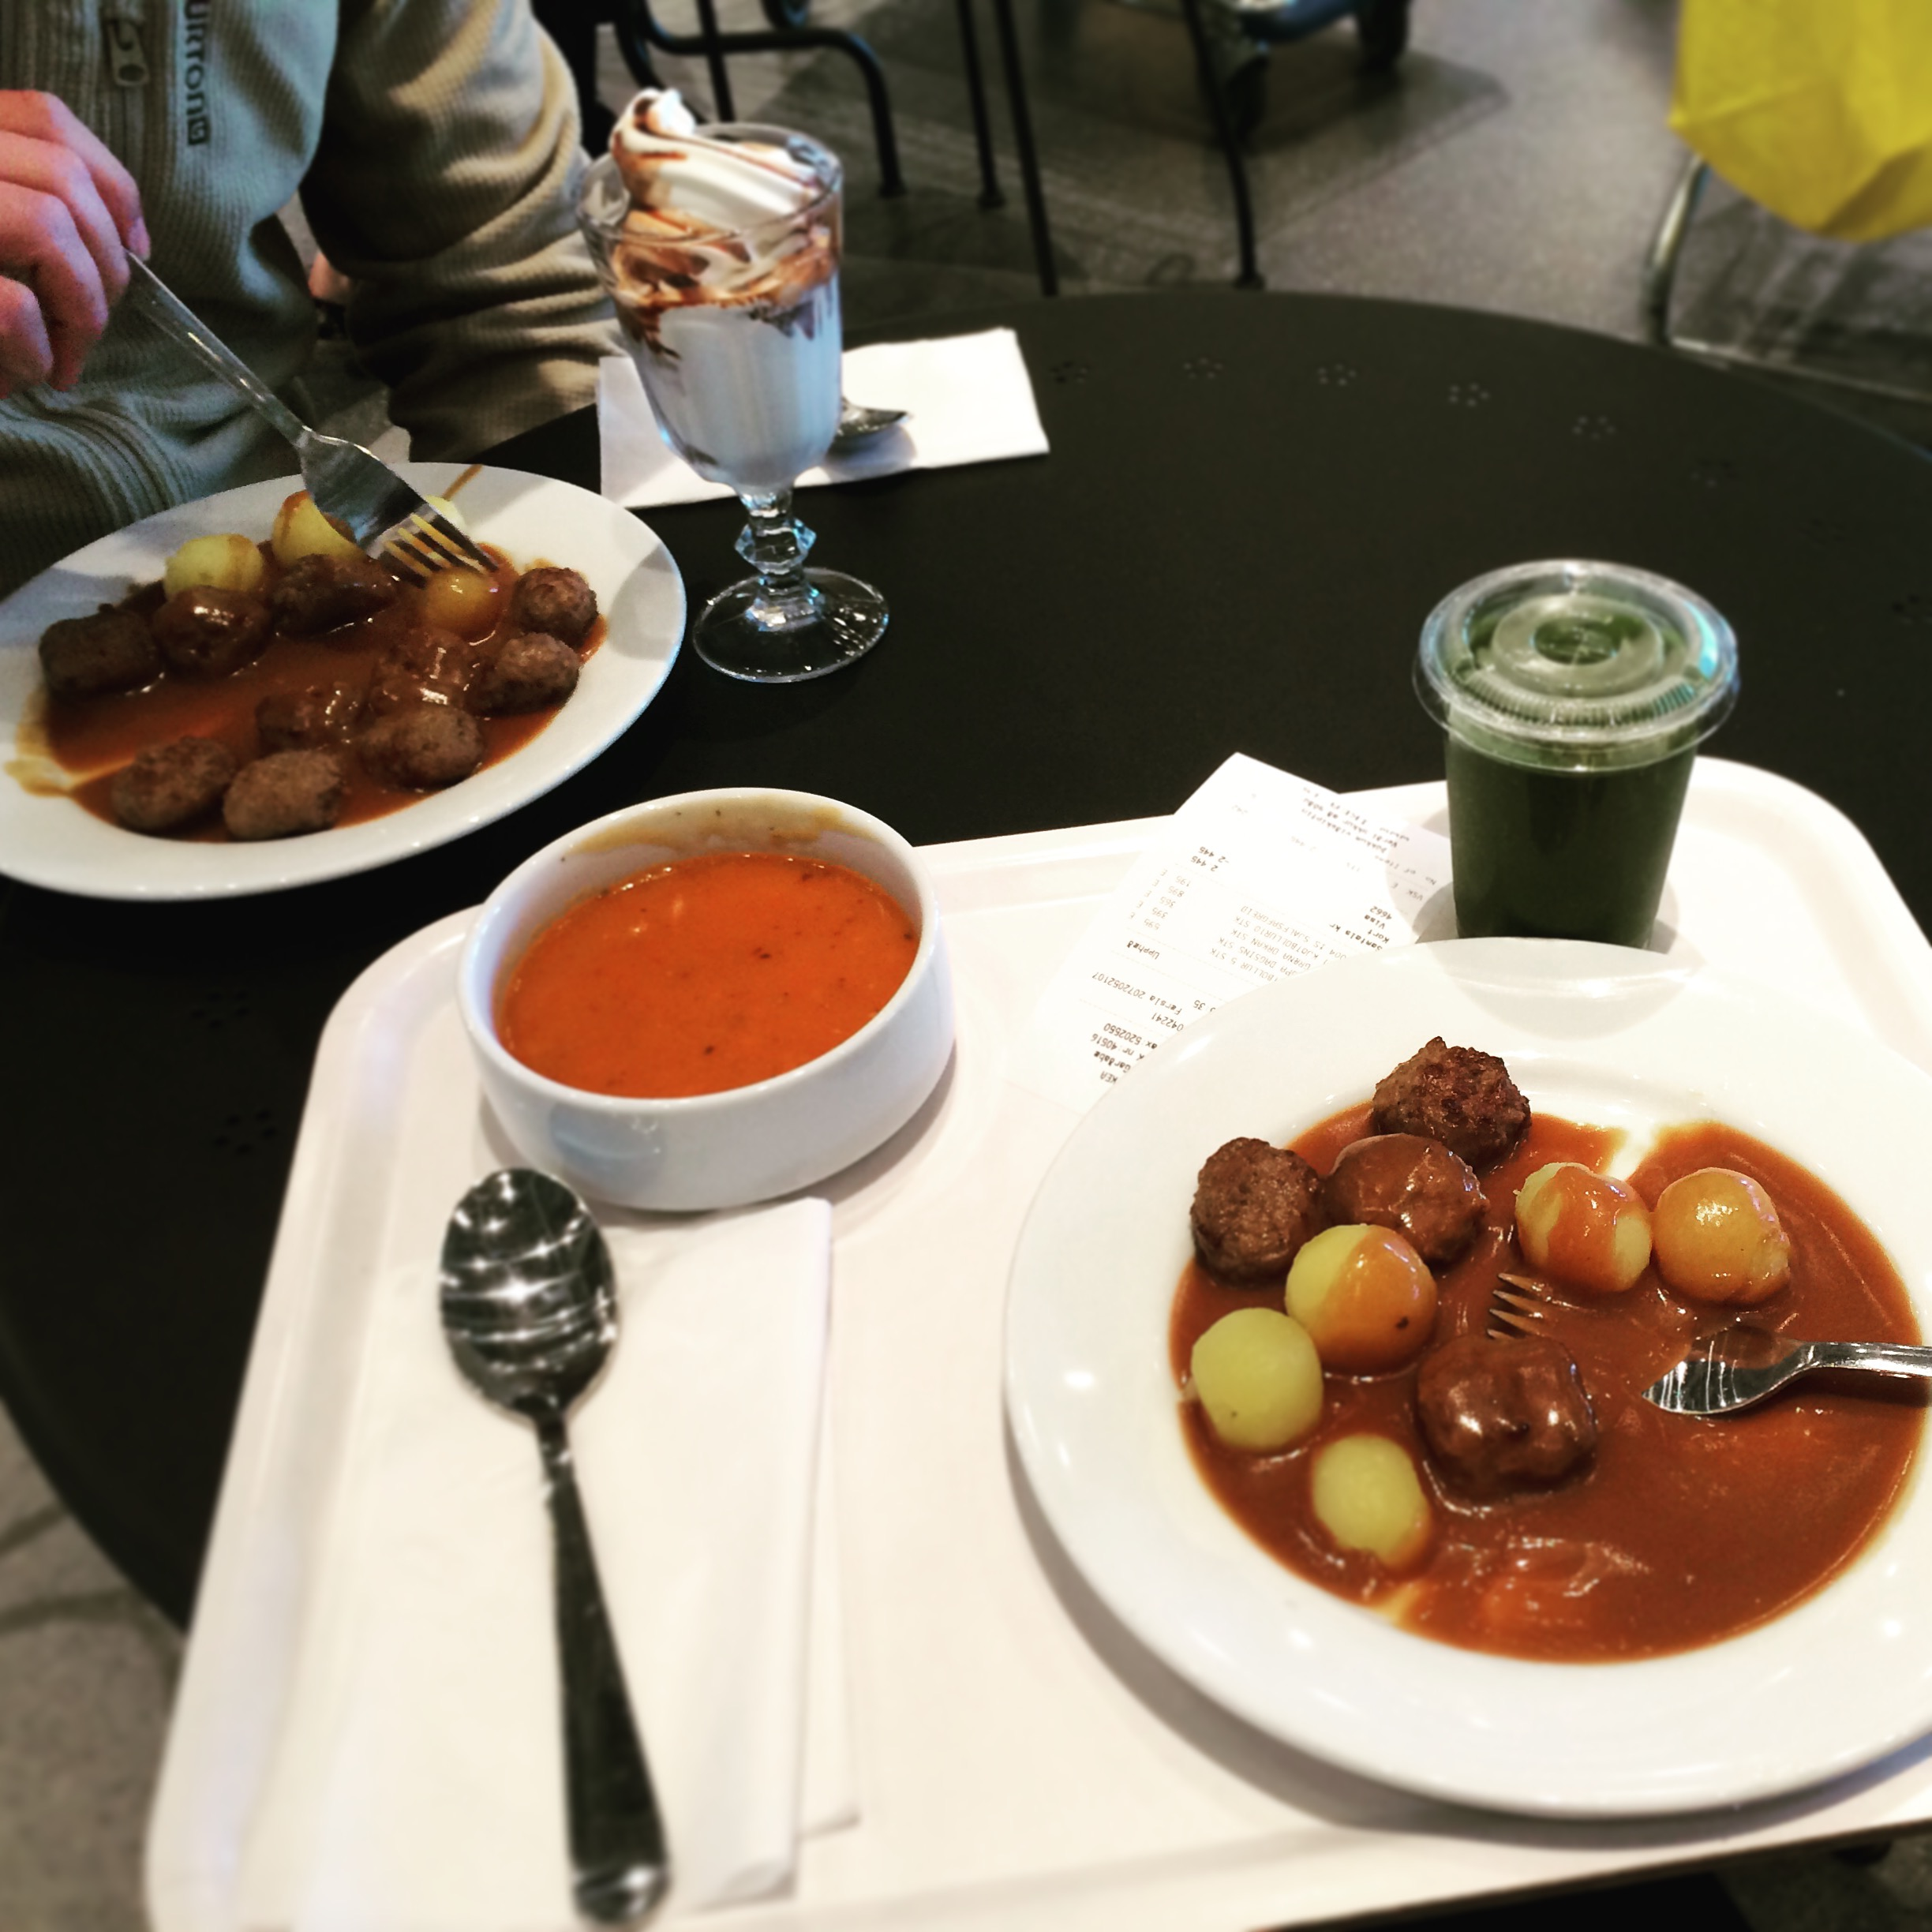 ikea iceland lunch